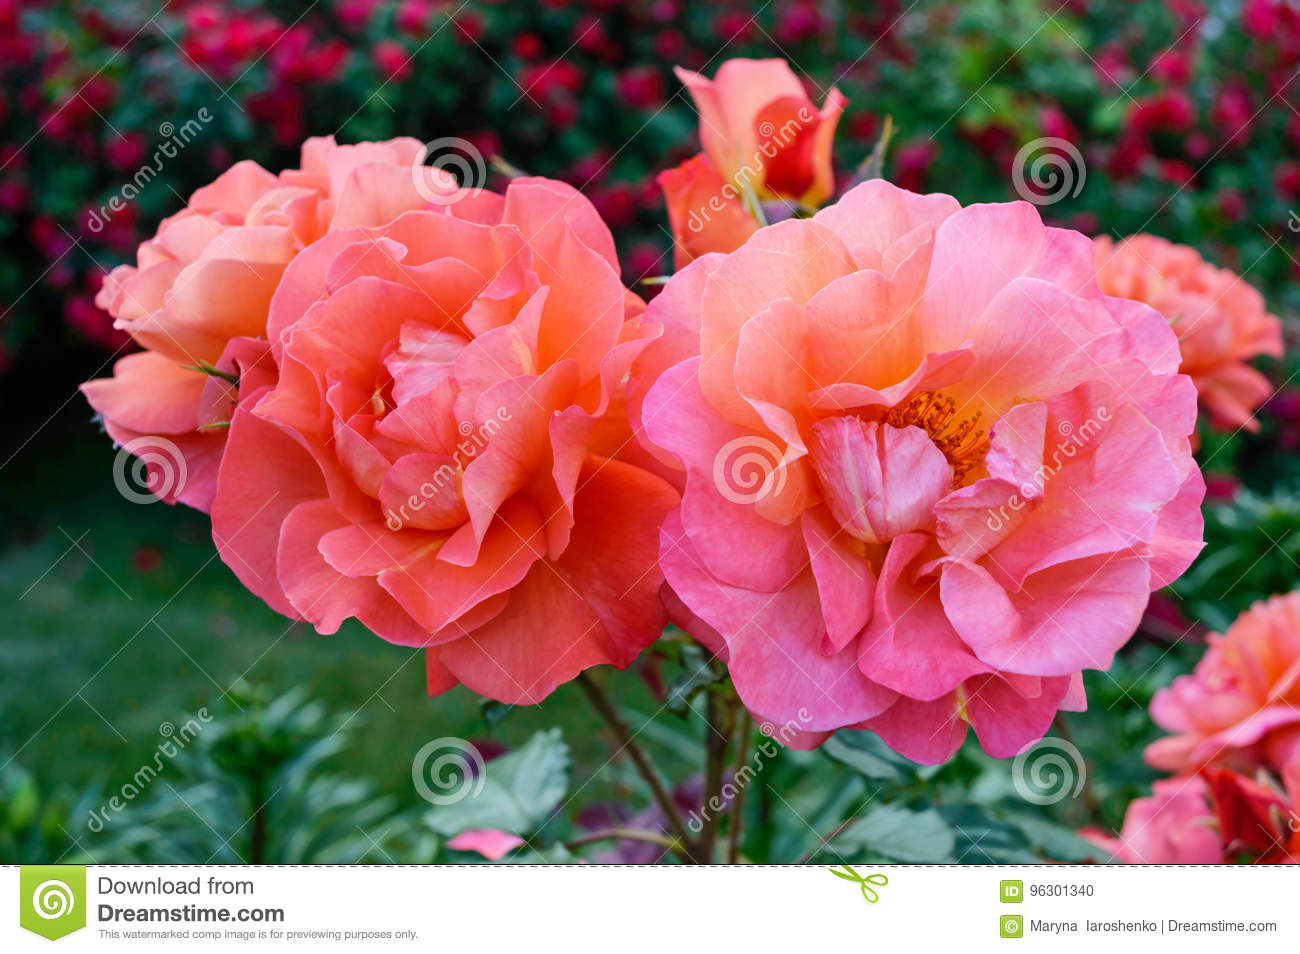 Lush Bush Of Bright Pink Roses On A Background Of Nature Flower